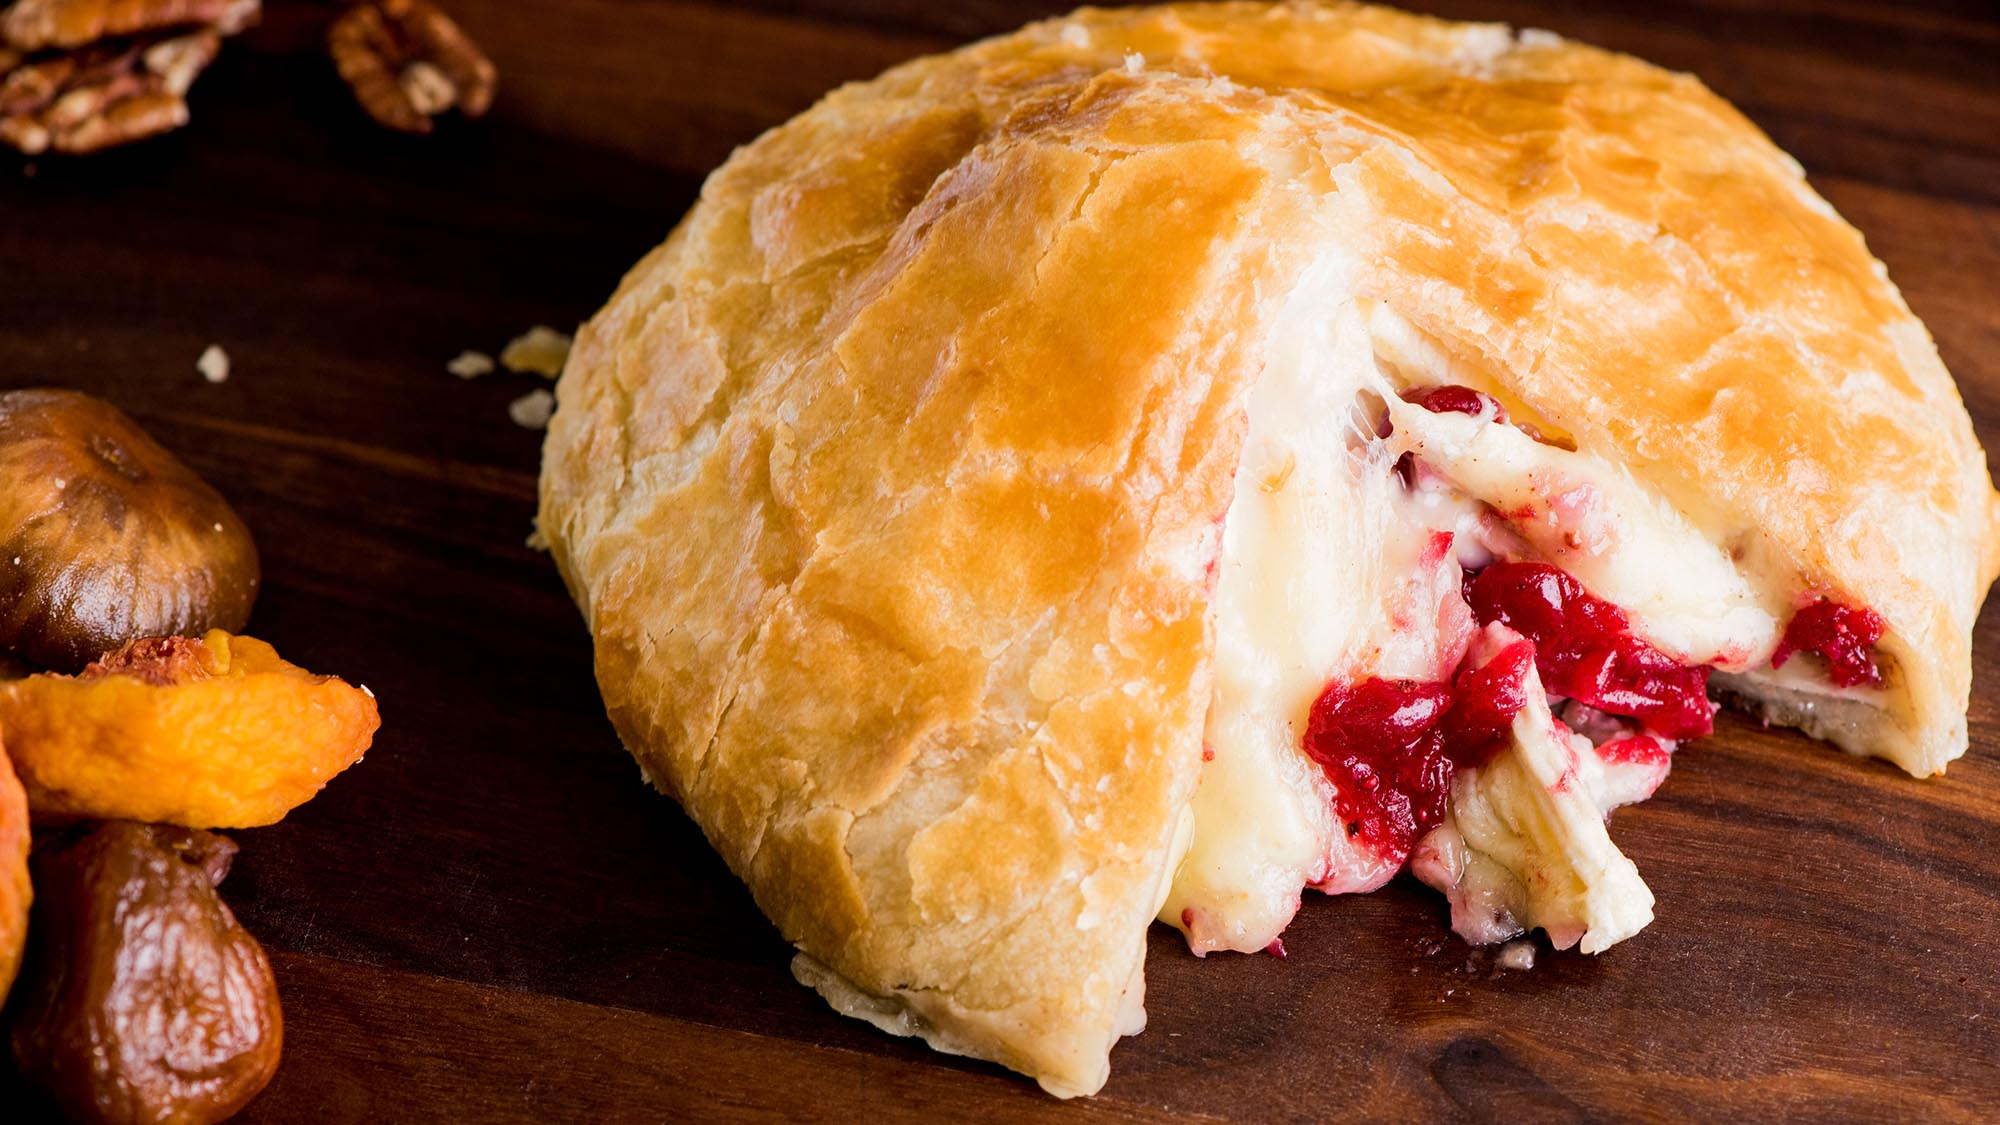 baked_brie_with_cranberry_chutney_2000x1125.jpg